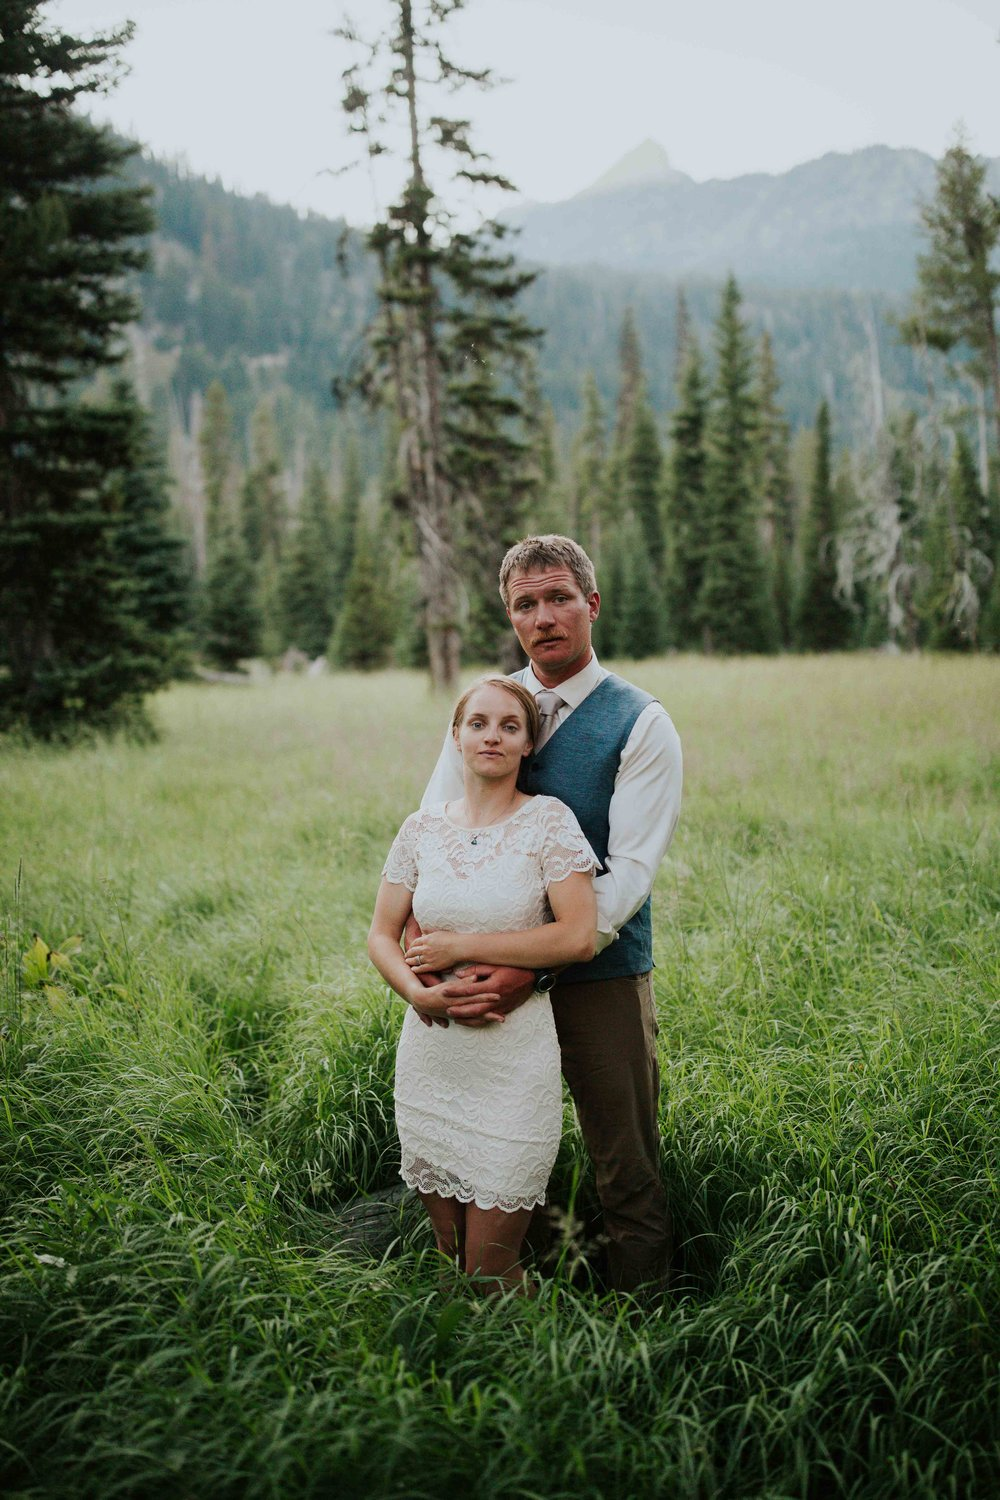 Outdoor Destination Elopement Photographer Six Mile Meadow-1.jpg